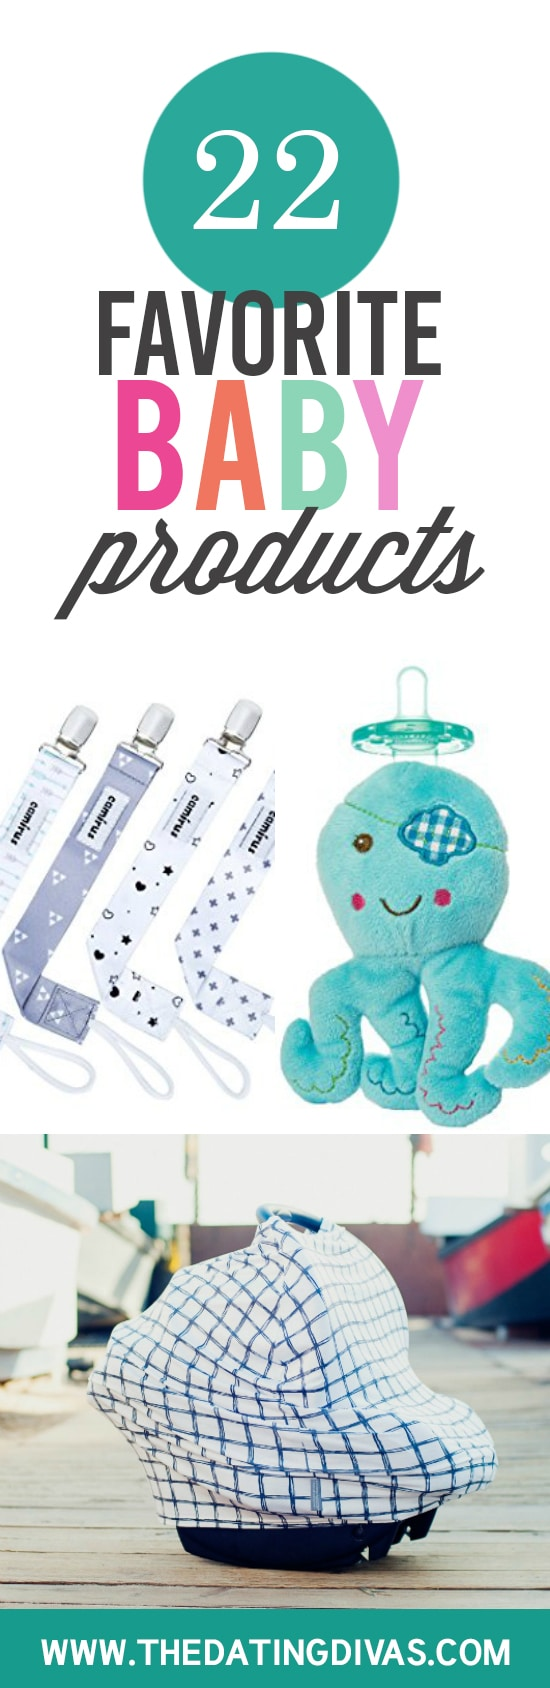 22 must-have baby products banner